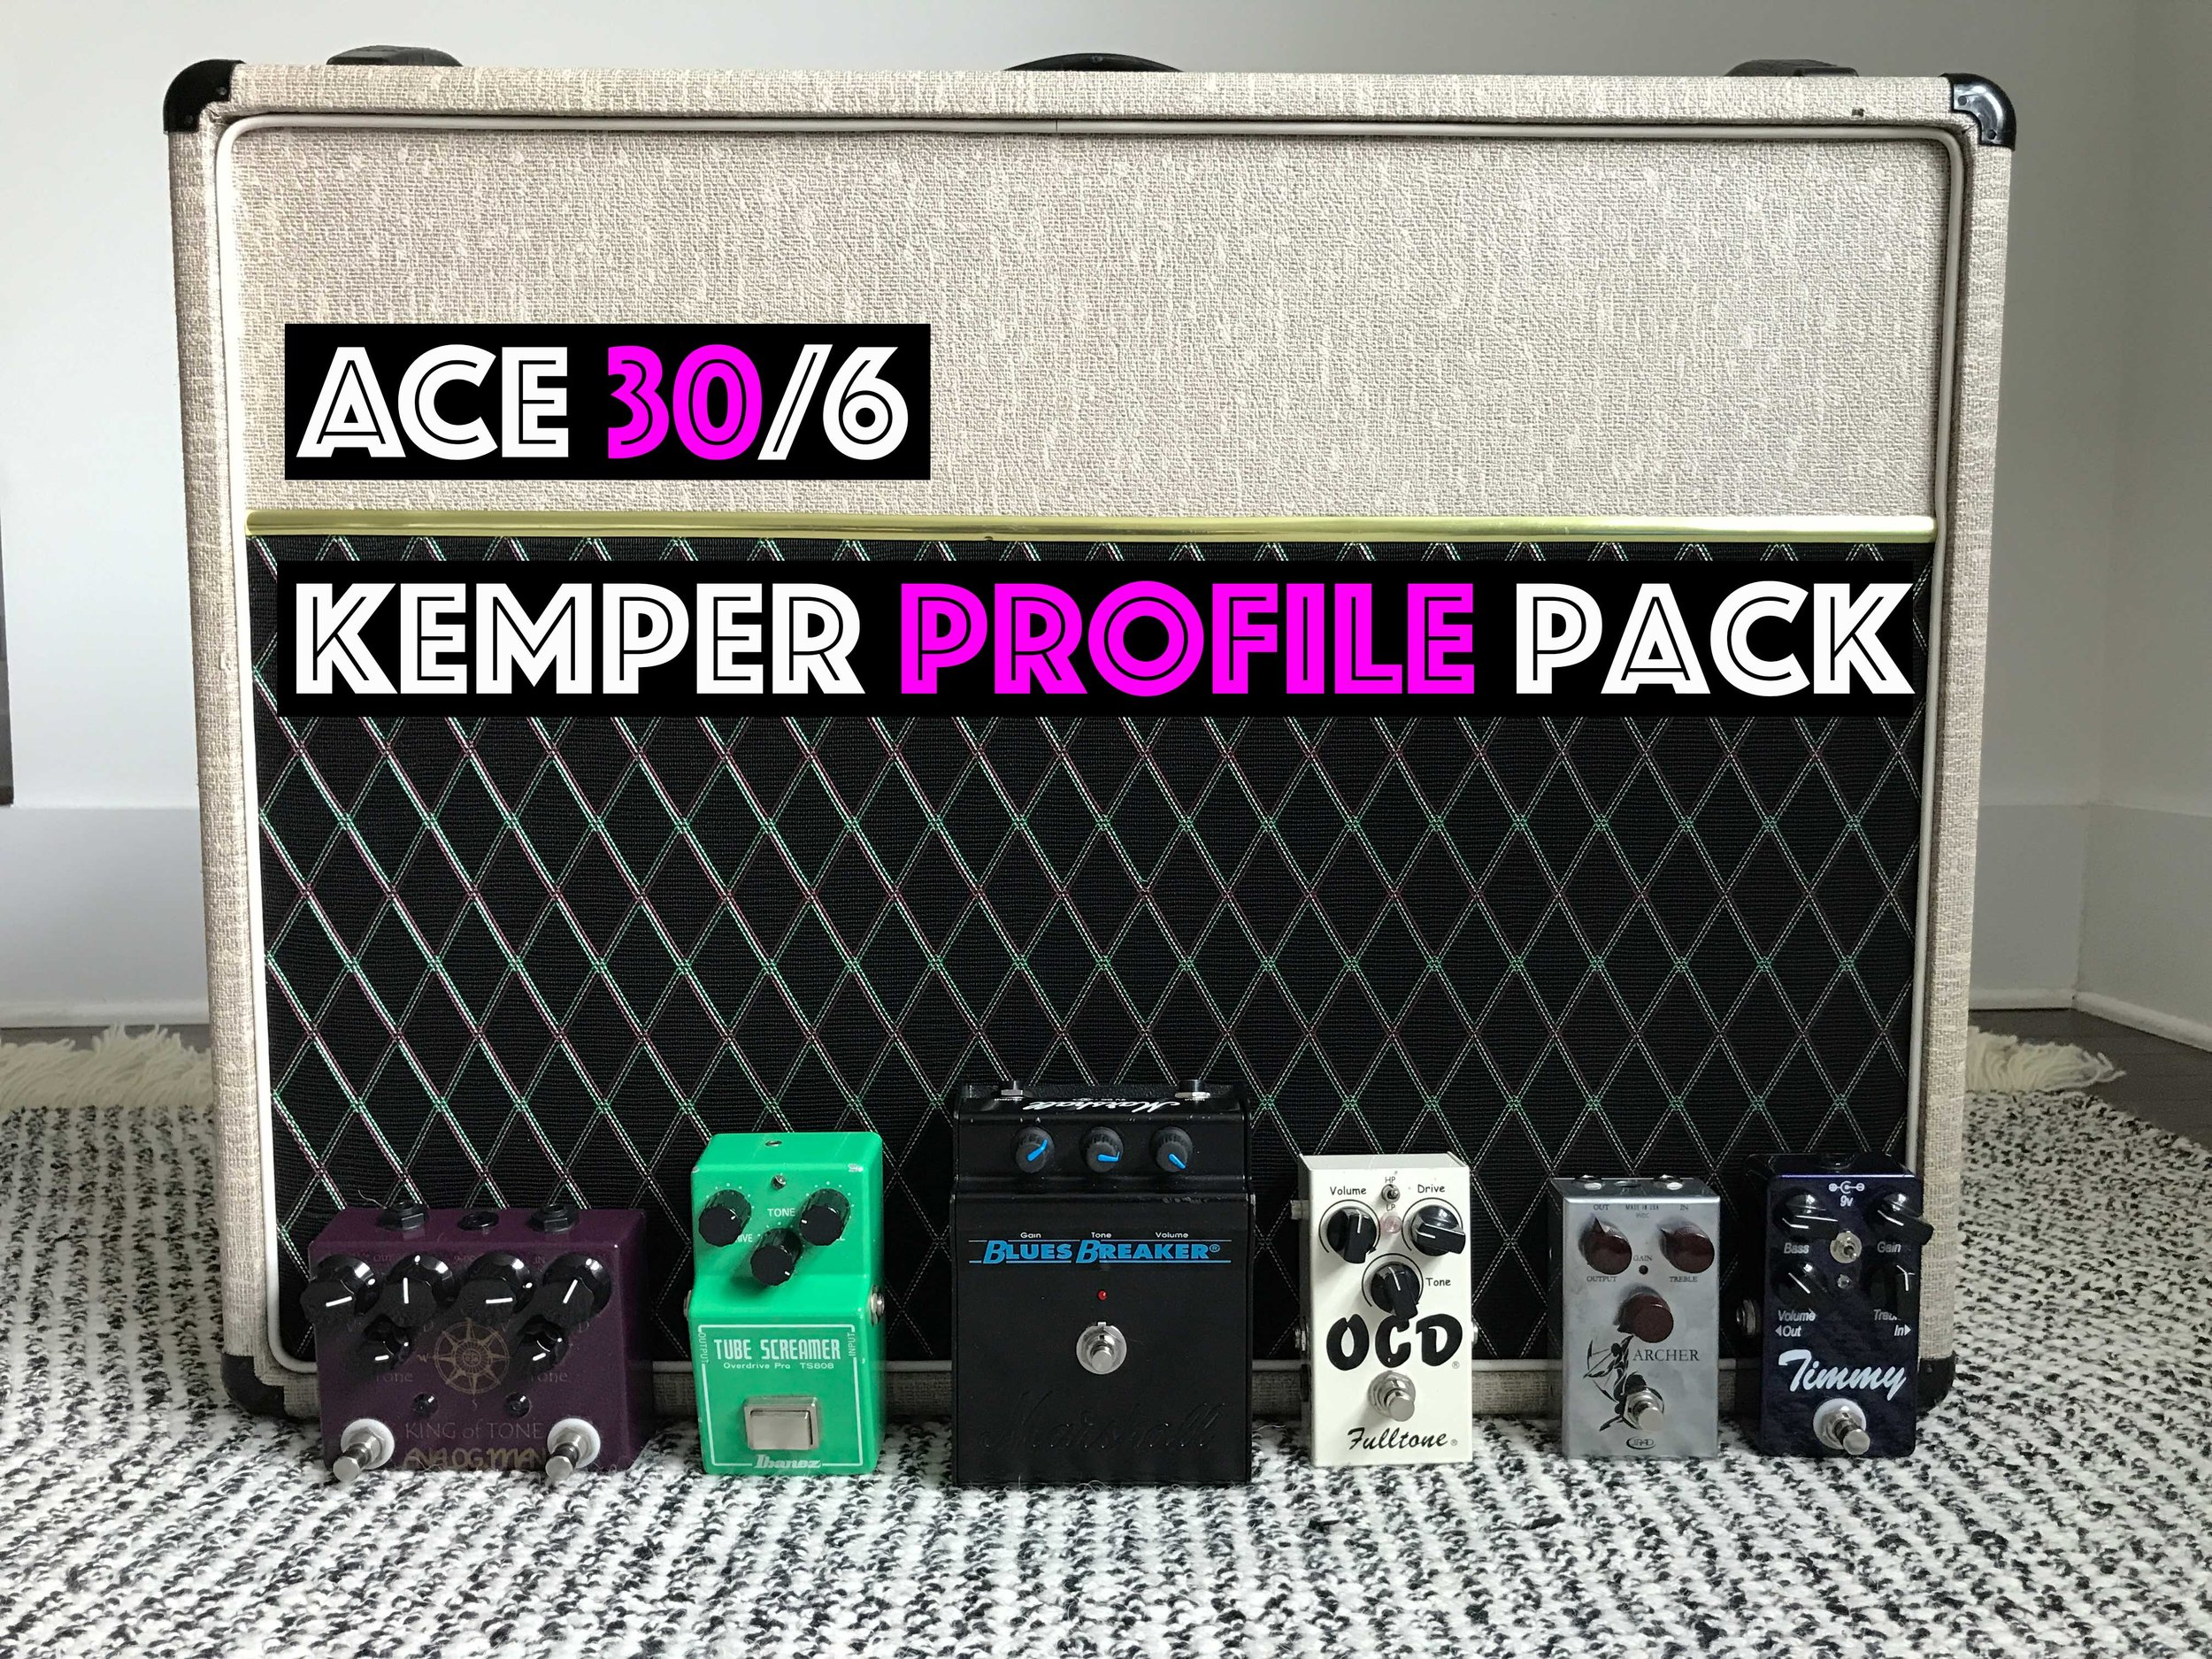 ACE 30/6 TB! - NOW ON SALE FOR 10$!!!!!!!! HW's Favorite Pack!!!The ACE 30/6 Pack from Tone Junkie feature 73 of the most amp like profiles ever captured for the Kemper. We've profiled this 6 input UK made VOX on the Normal Channel, Brilliant Channel and both channels combined first with Greenbacks then with Blues. From clean to scream and everything in between, on it's own and pushed by some of our favorite drive pedals. If a vox can make the sound, we have it in this pack!